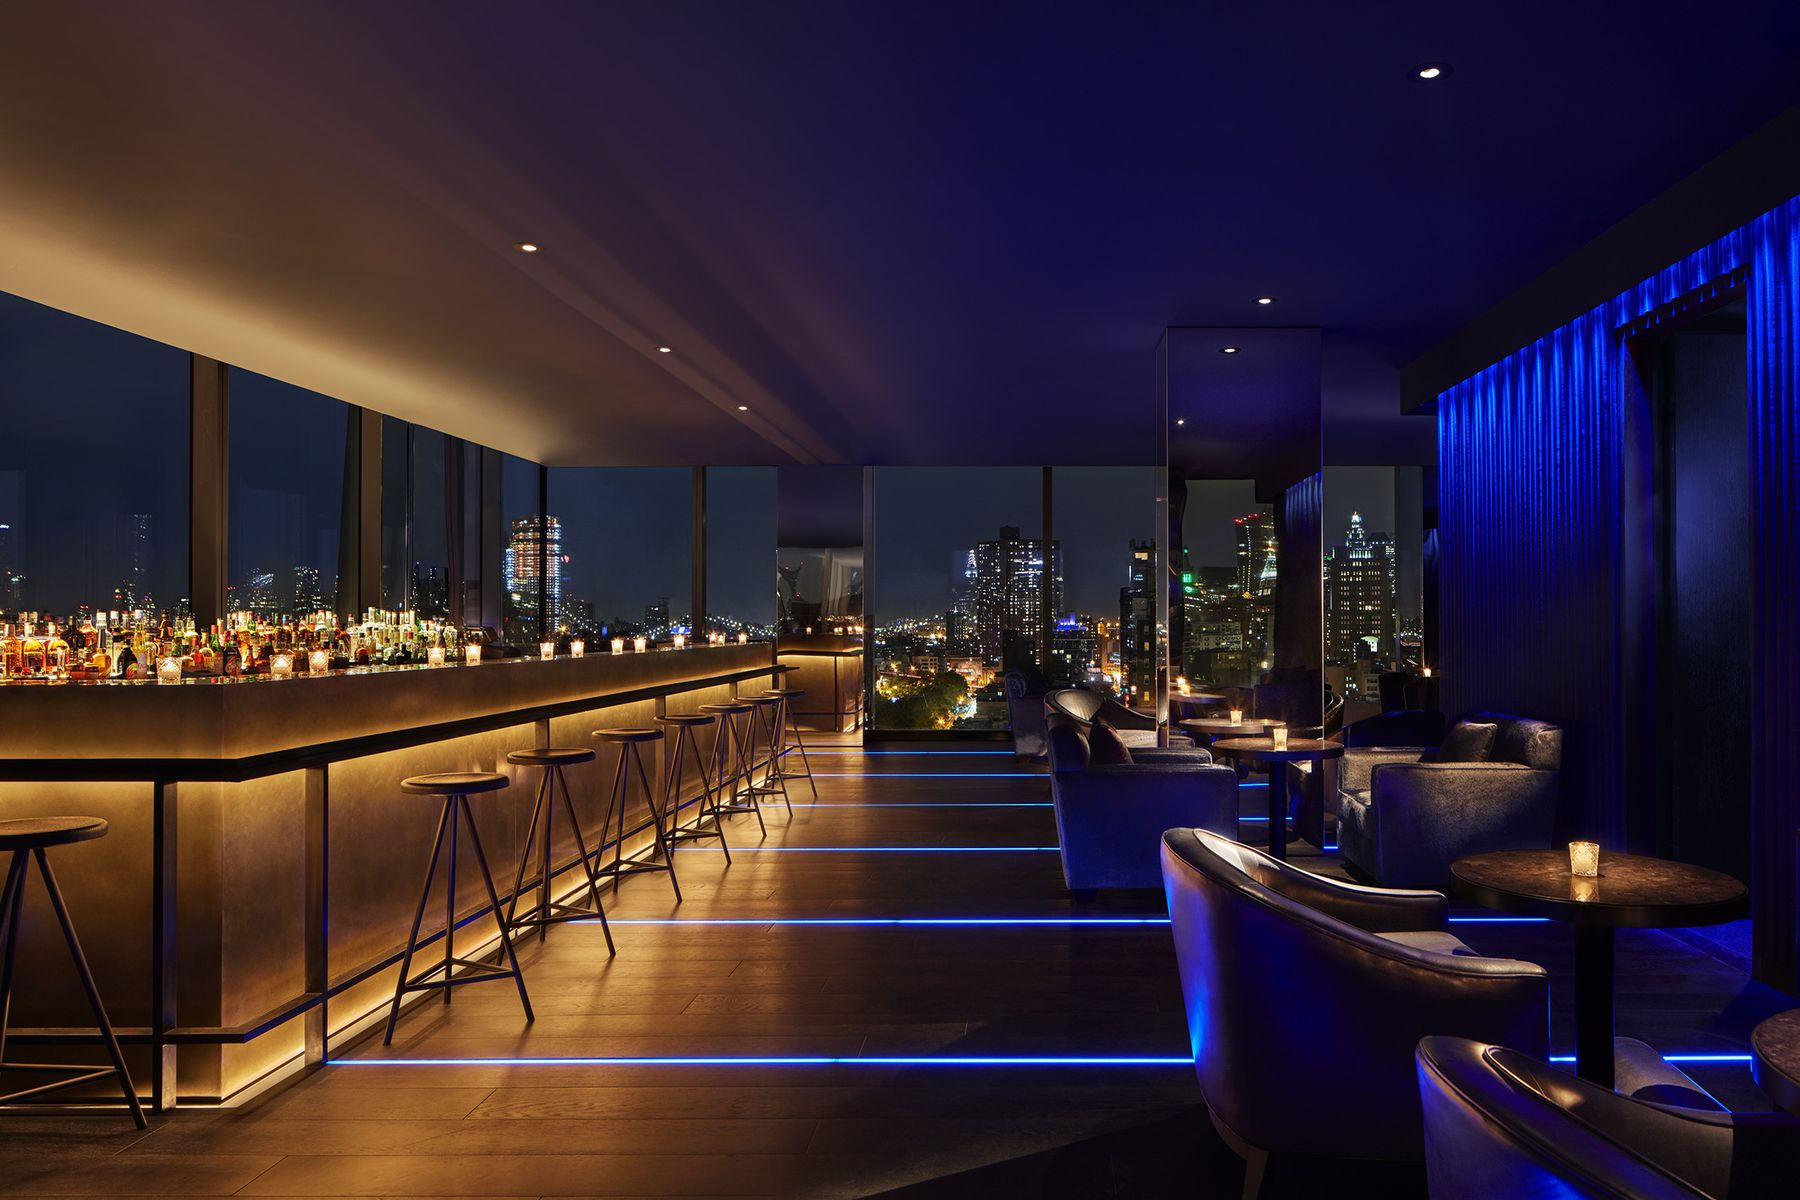 Tour Ian Schrager's Public Hotel Which Recently Opened on the Lower East Side